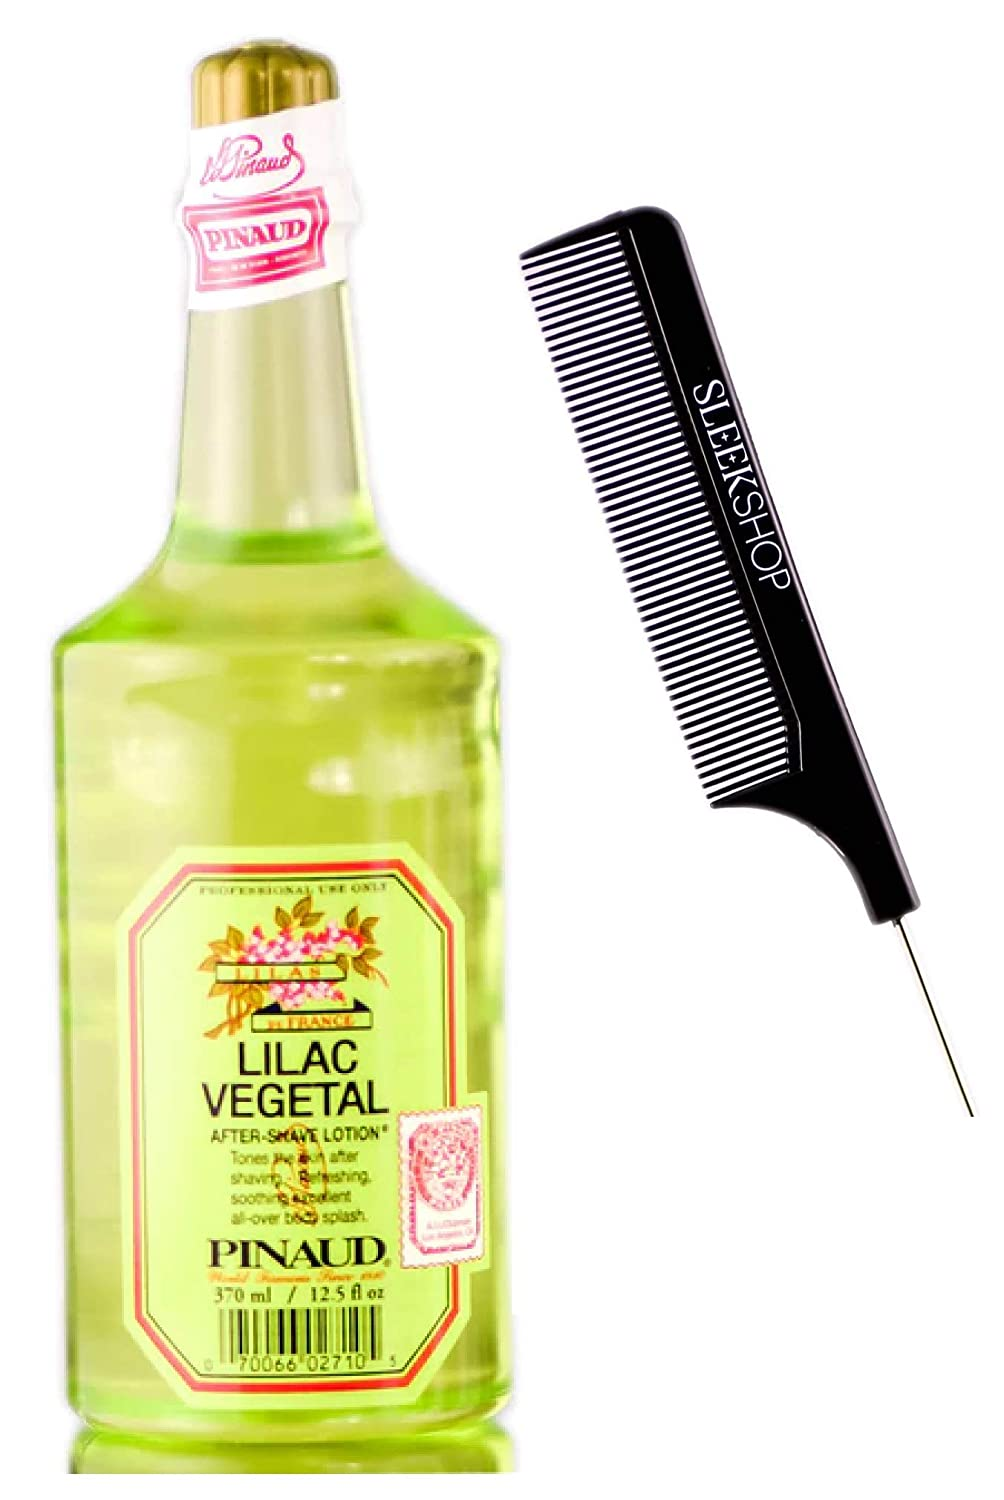 Pinaud Trust Now free shipping Clubman Since 1810 LILAC Lotion Lil VEGETAL After-Shave